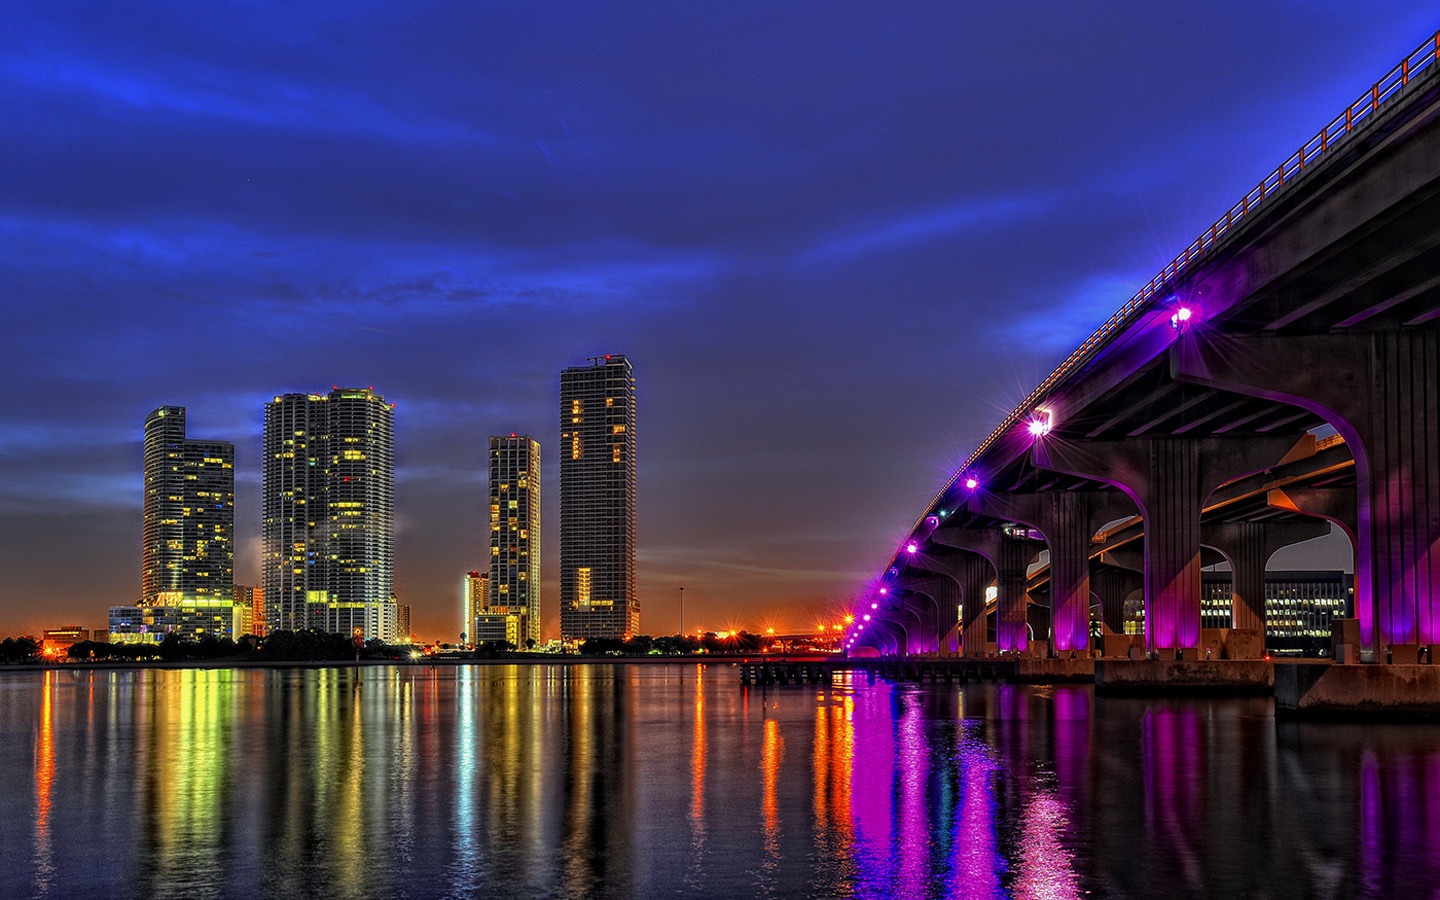 Miami Lights 1440x900 wallpaper